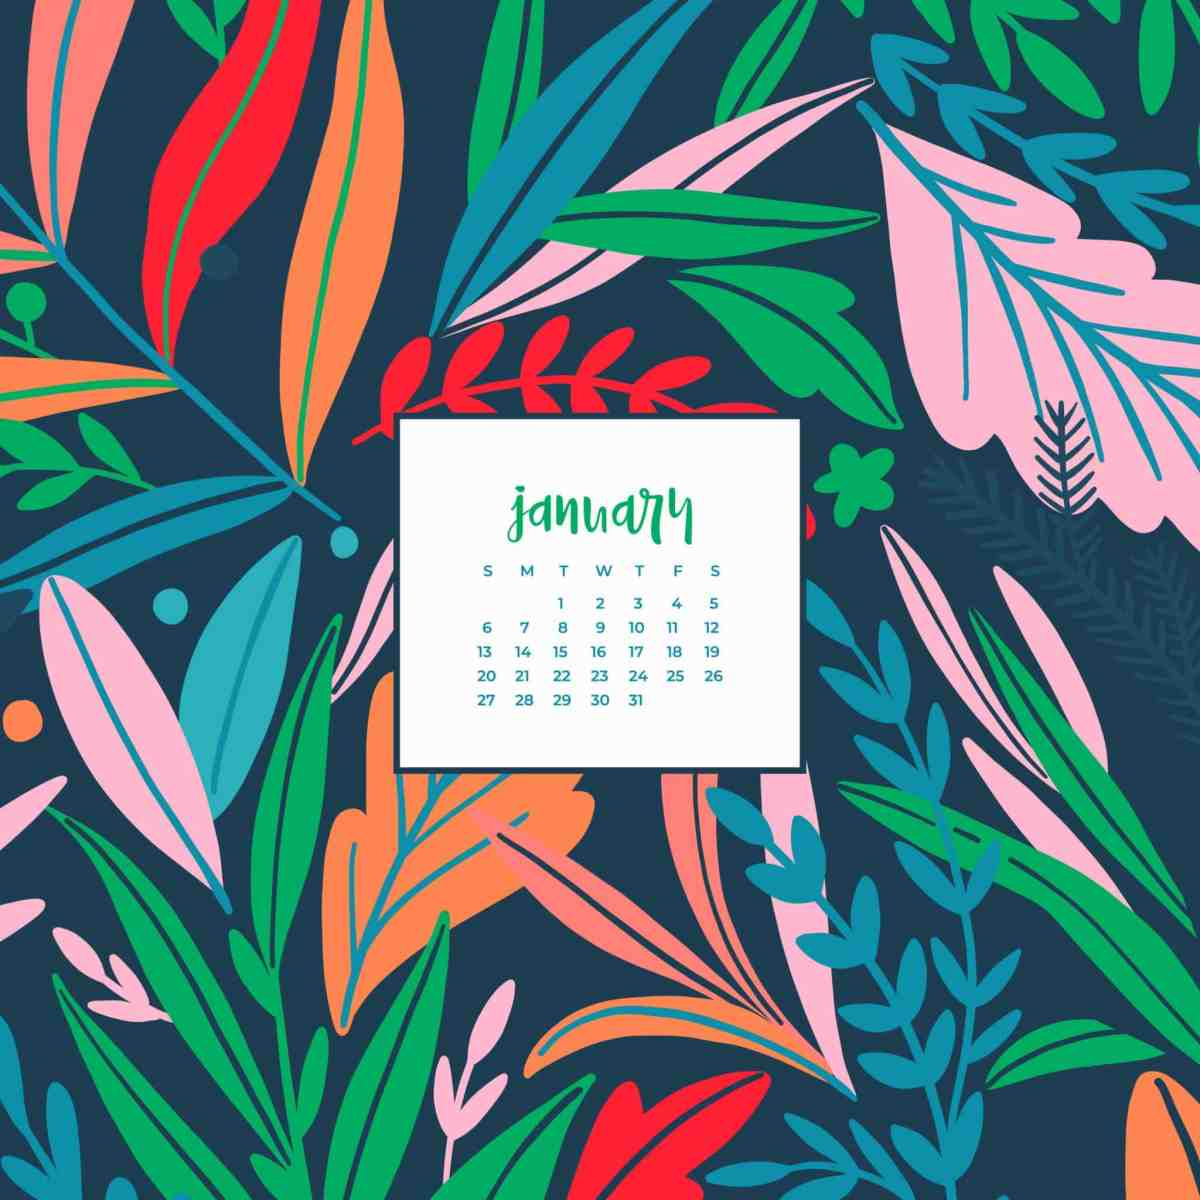 Oh So Lovely Blog Shares 4 Free January 2018 Wallpapers In Both